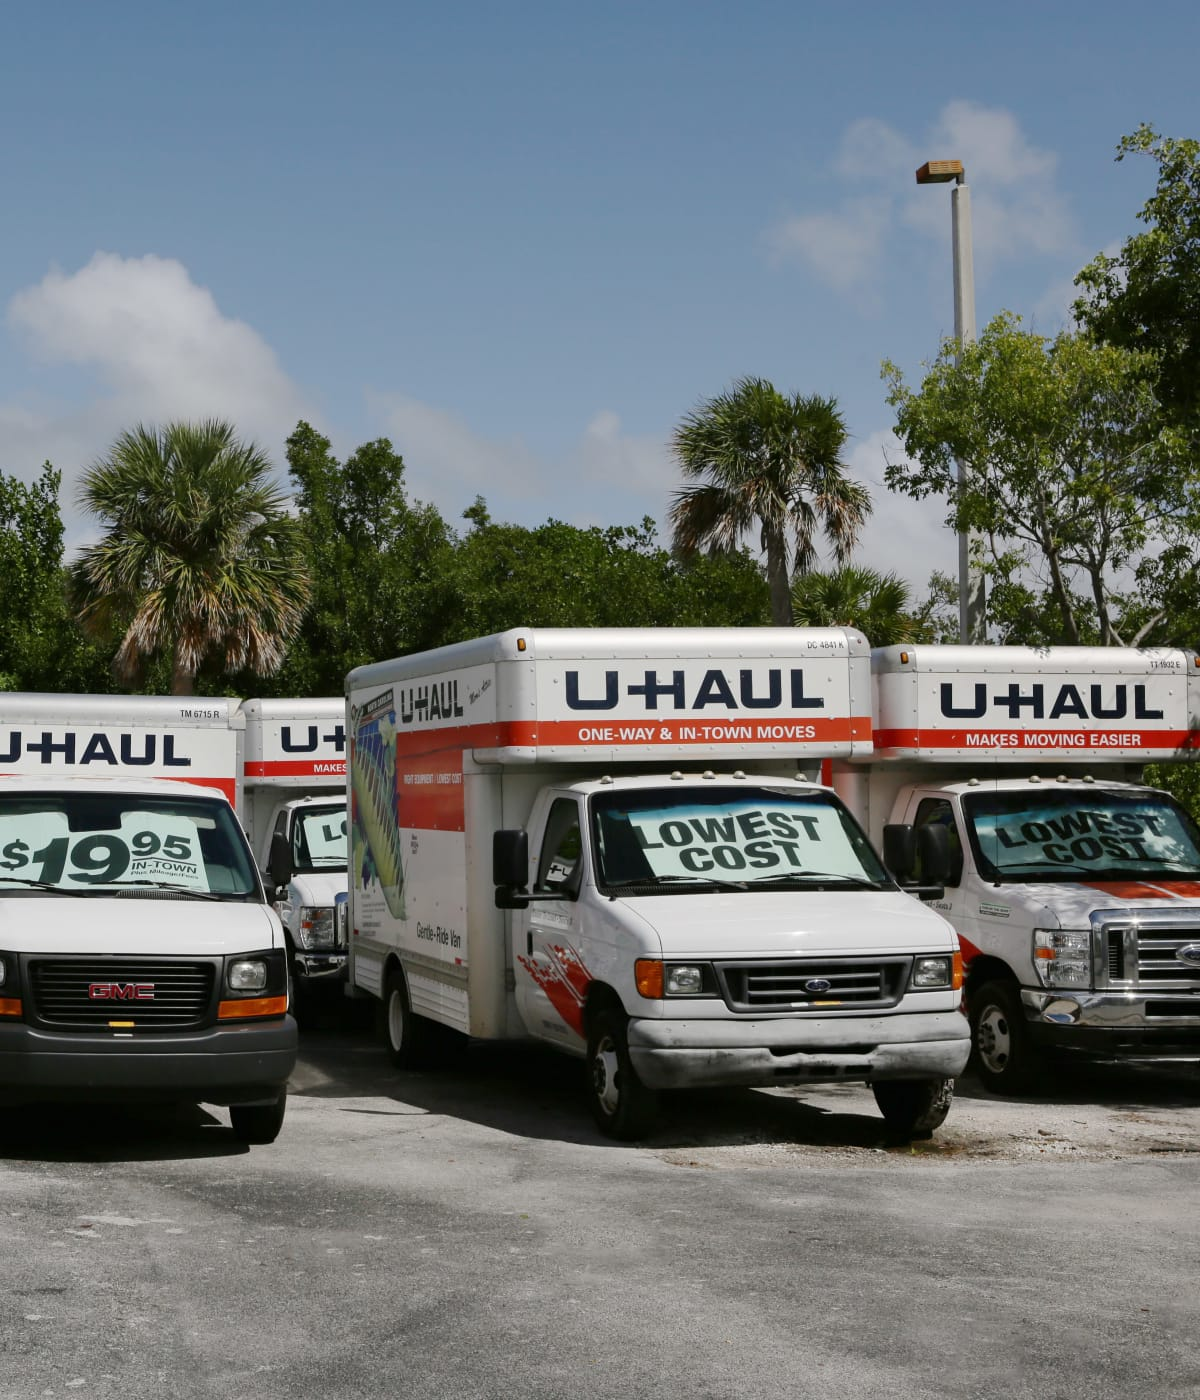 Midgard Self Storage in Key West, Florida, has moving trucks for rent